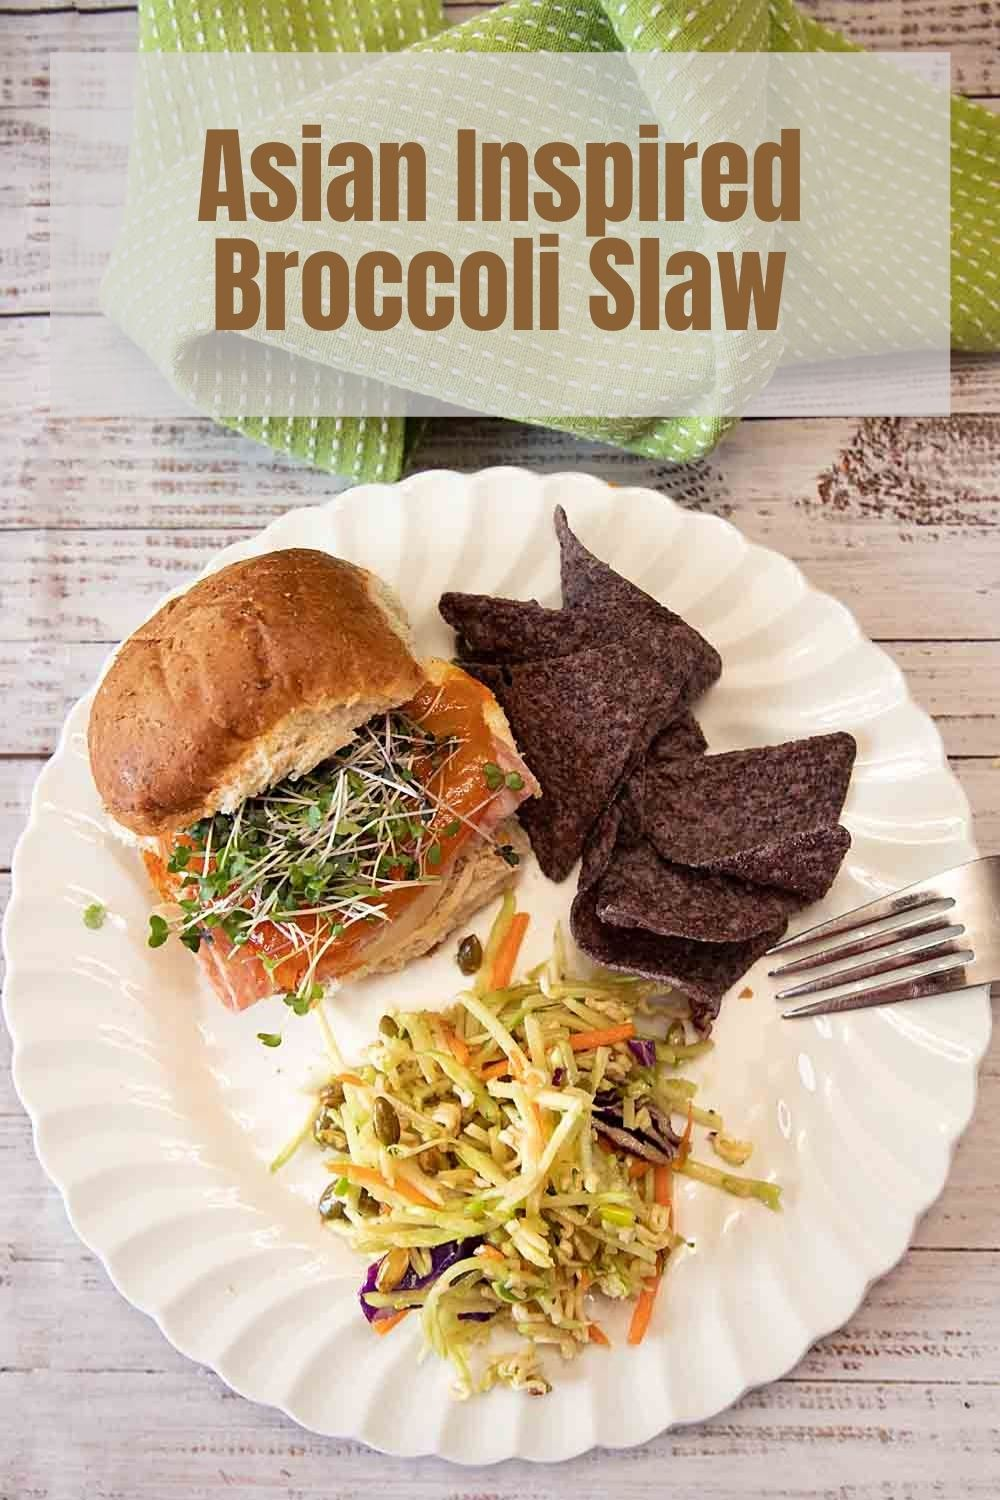 A crunchy salad that's a versatile side dish, Asian-Inspired Broccoli Slaw is highlighted by flavors like toasted sesame oil and teriyaki.